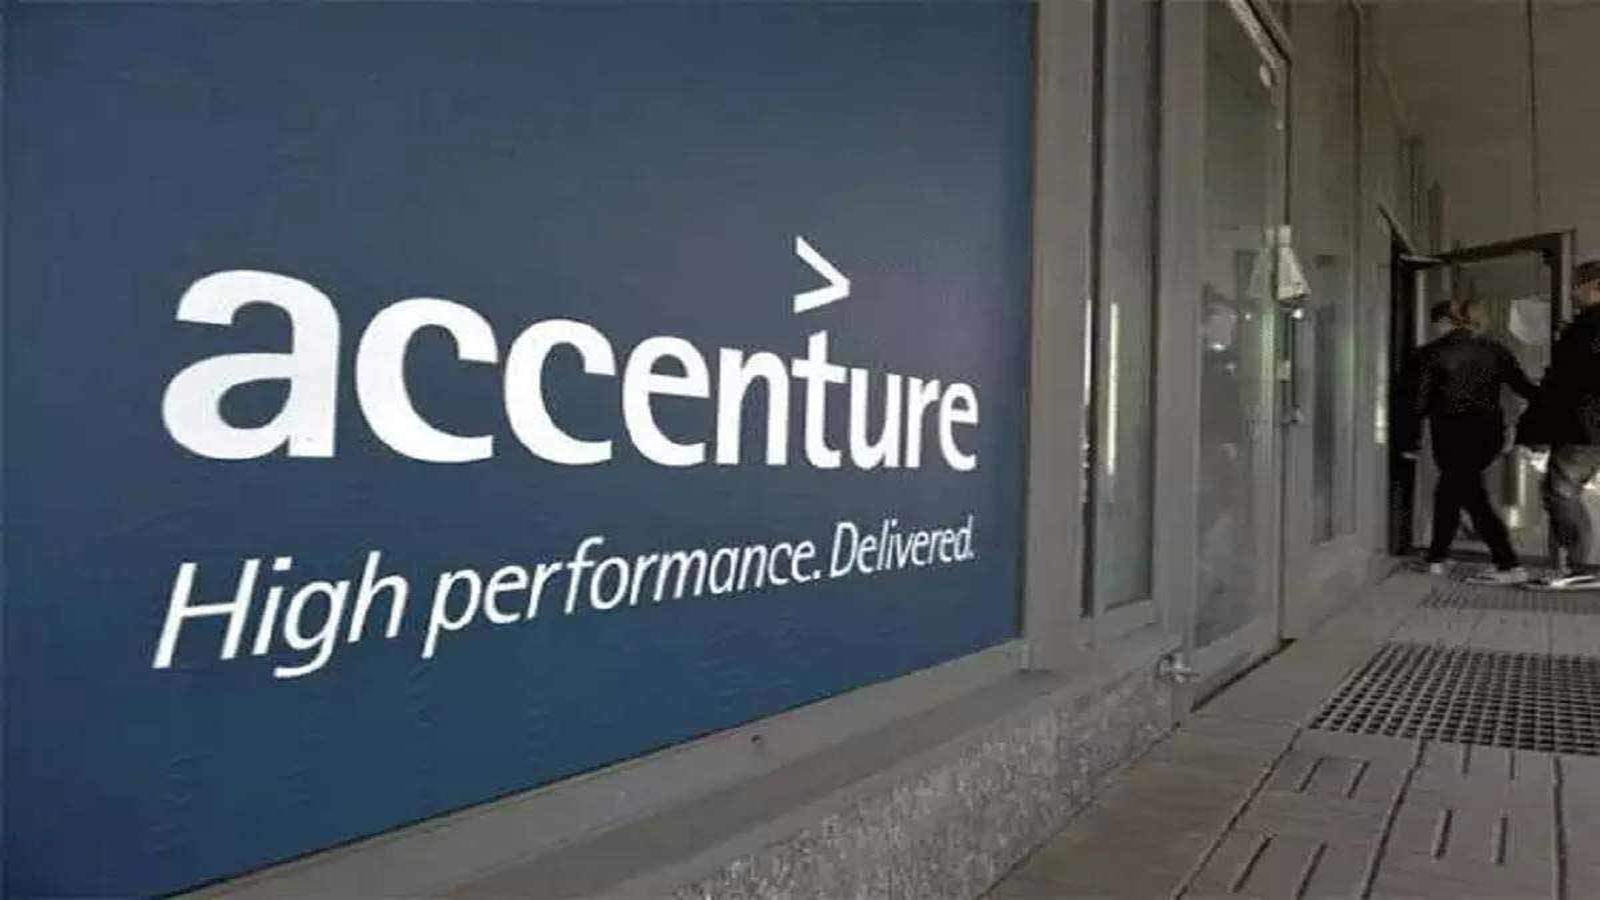 accenture-offers-7-month-severance-payout-to-staff